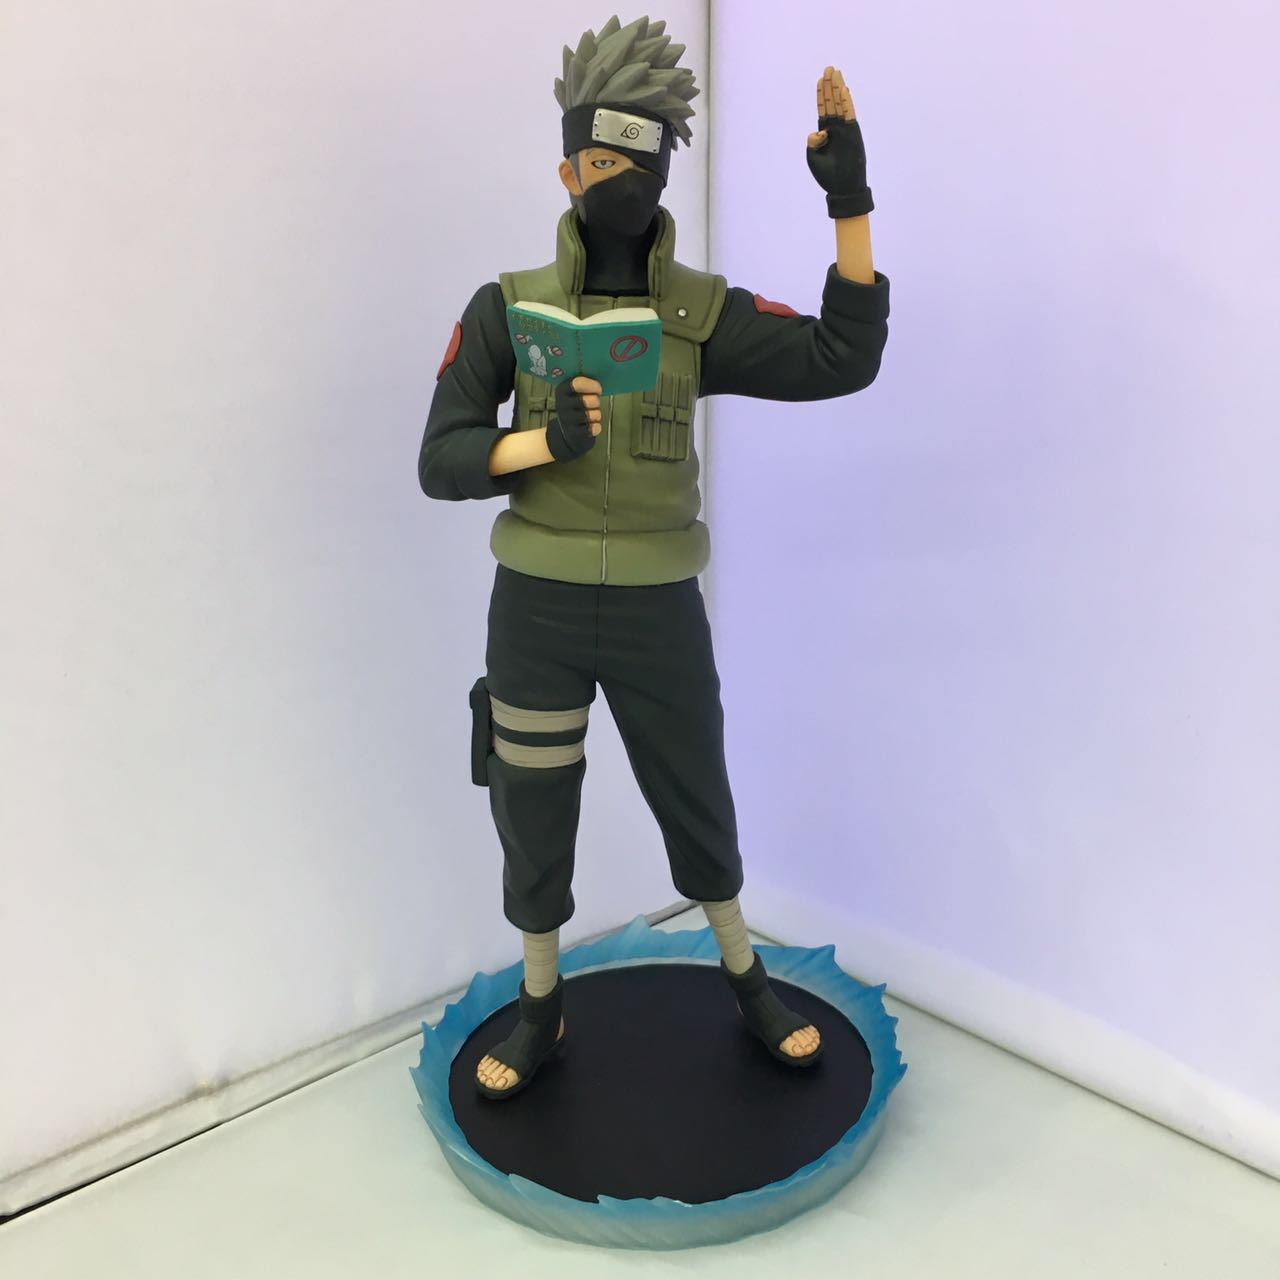 Naruto Kakashi Hatake Action Figure Sharingan Ver. Kakashi Doll PVC Action Figure Collectible Model Toy 30cm KT3510 free shipping 12 naruto anime ninja copiador hatake kakashi light blade stand boxed 30cm pvc action figure collection model toy